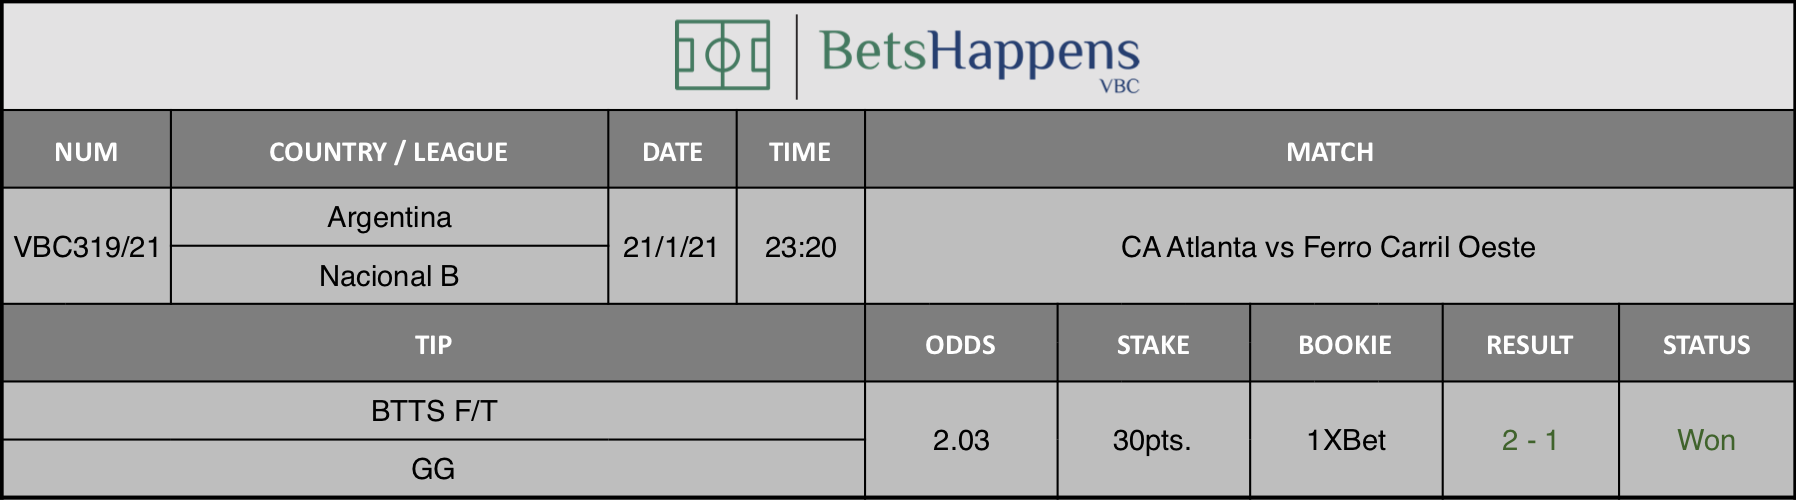 Results of our tip for the CA Atlanta vs Ferro Carril Oeste match where BTTS F/T  GG is recommended.